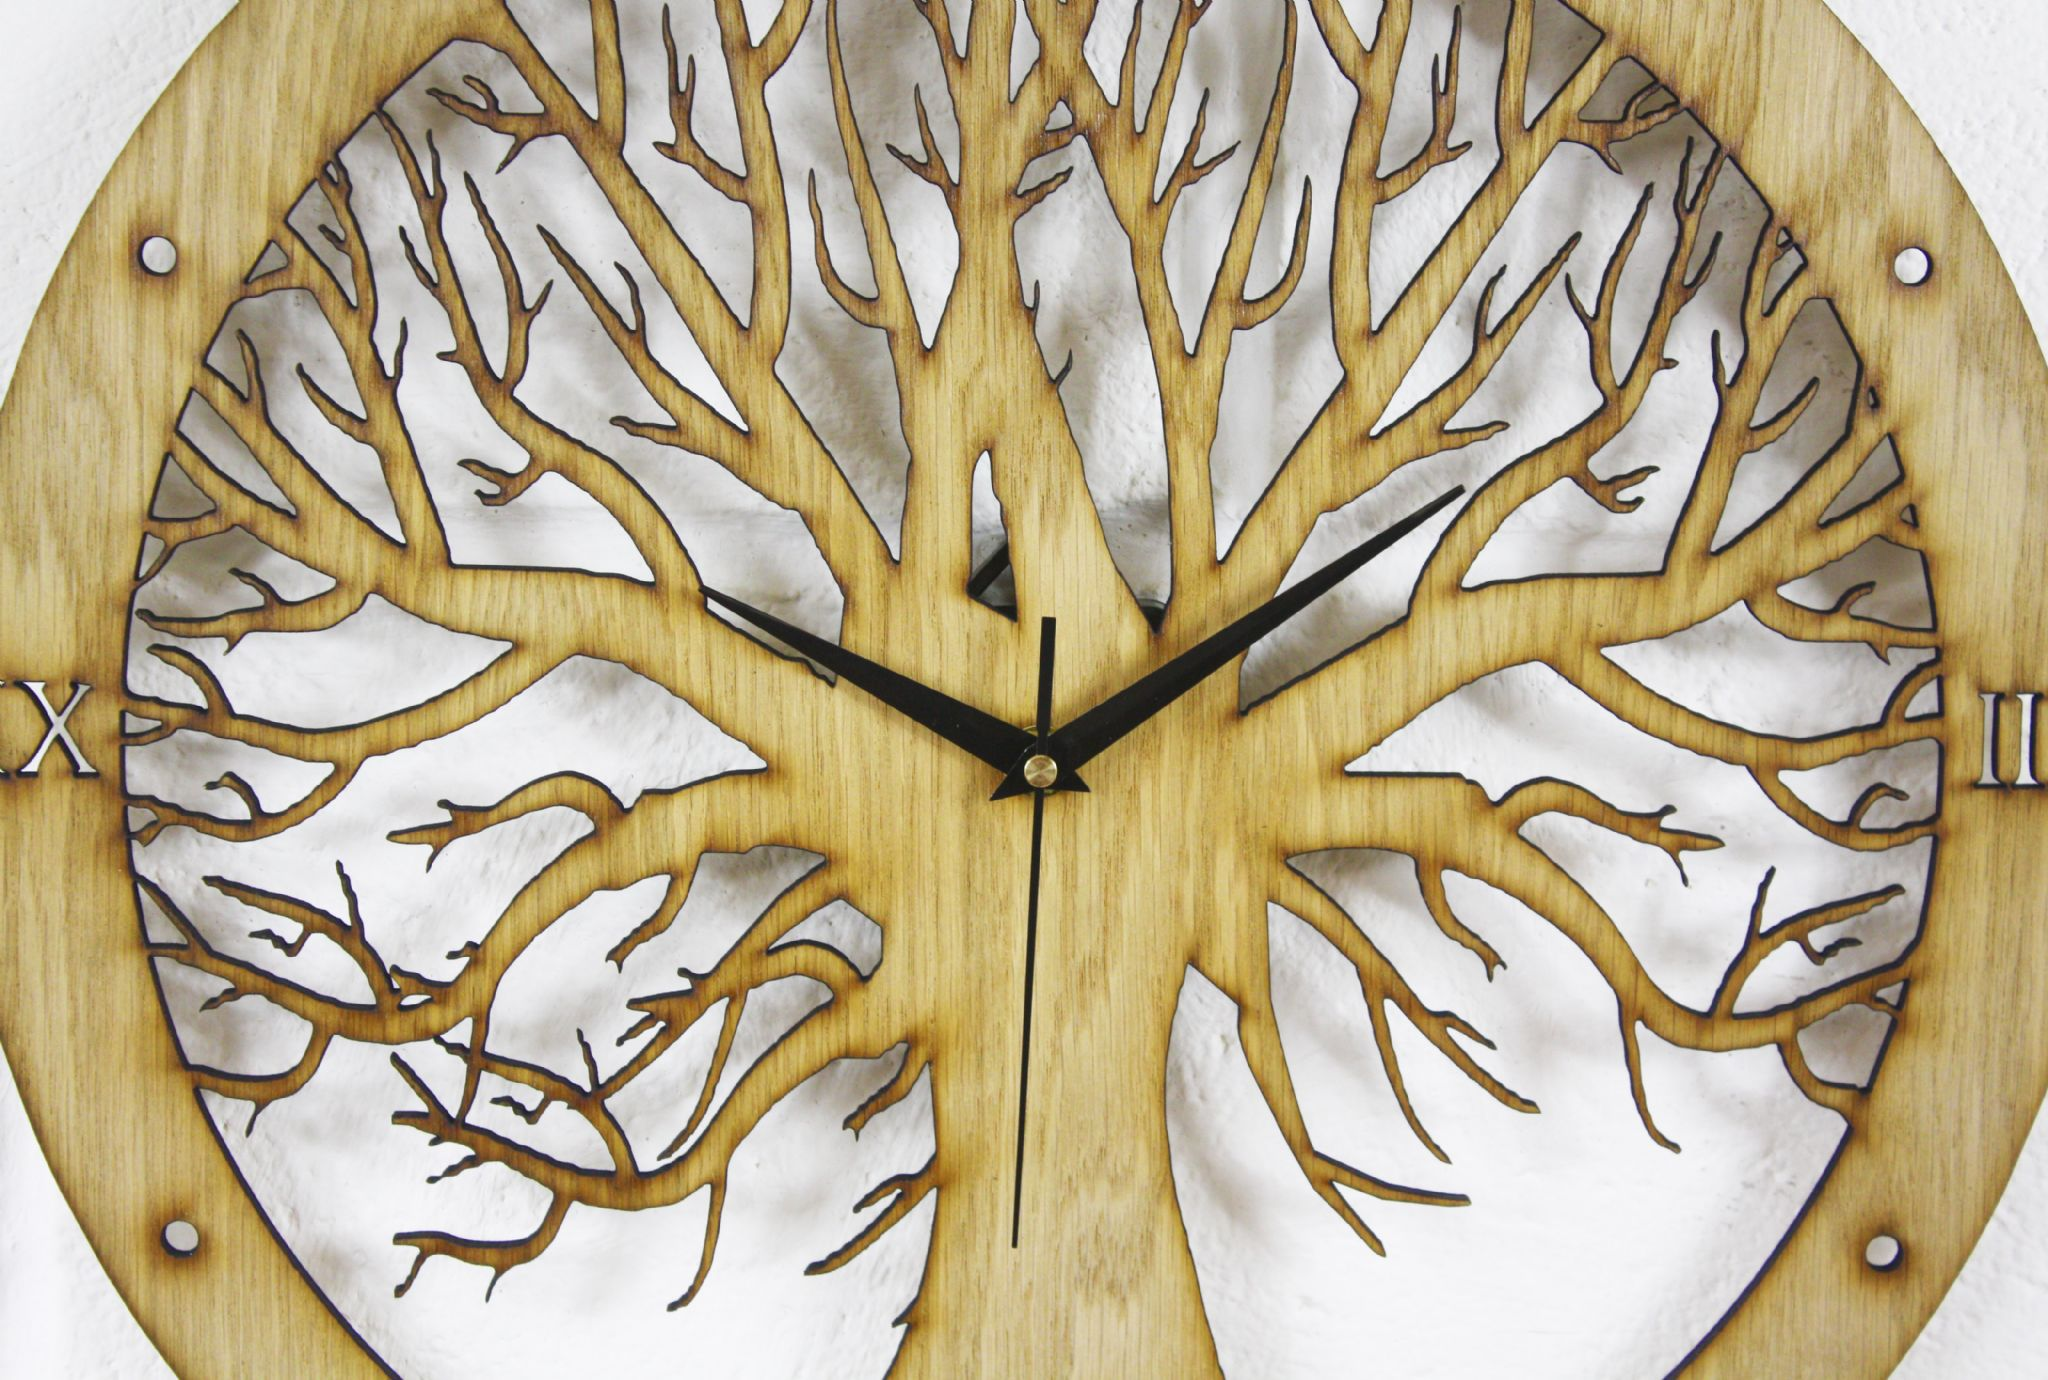 Led Lighting For Home Interiors Tree Design Laser Cut Clock